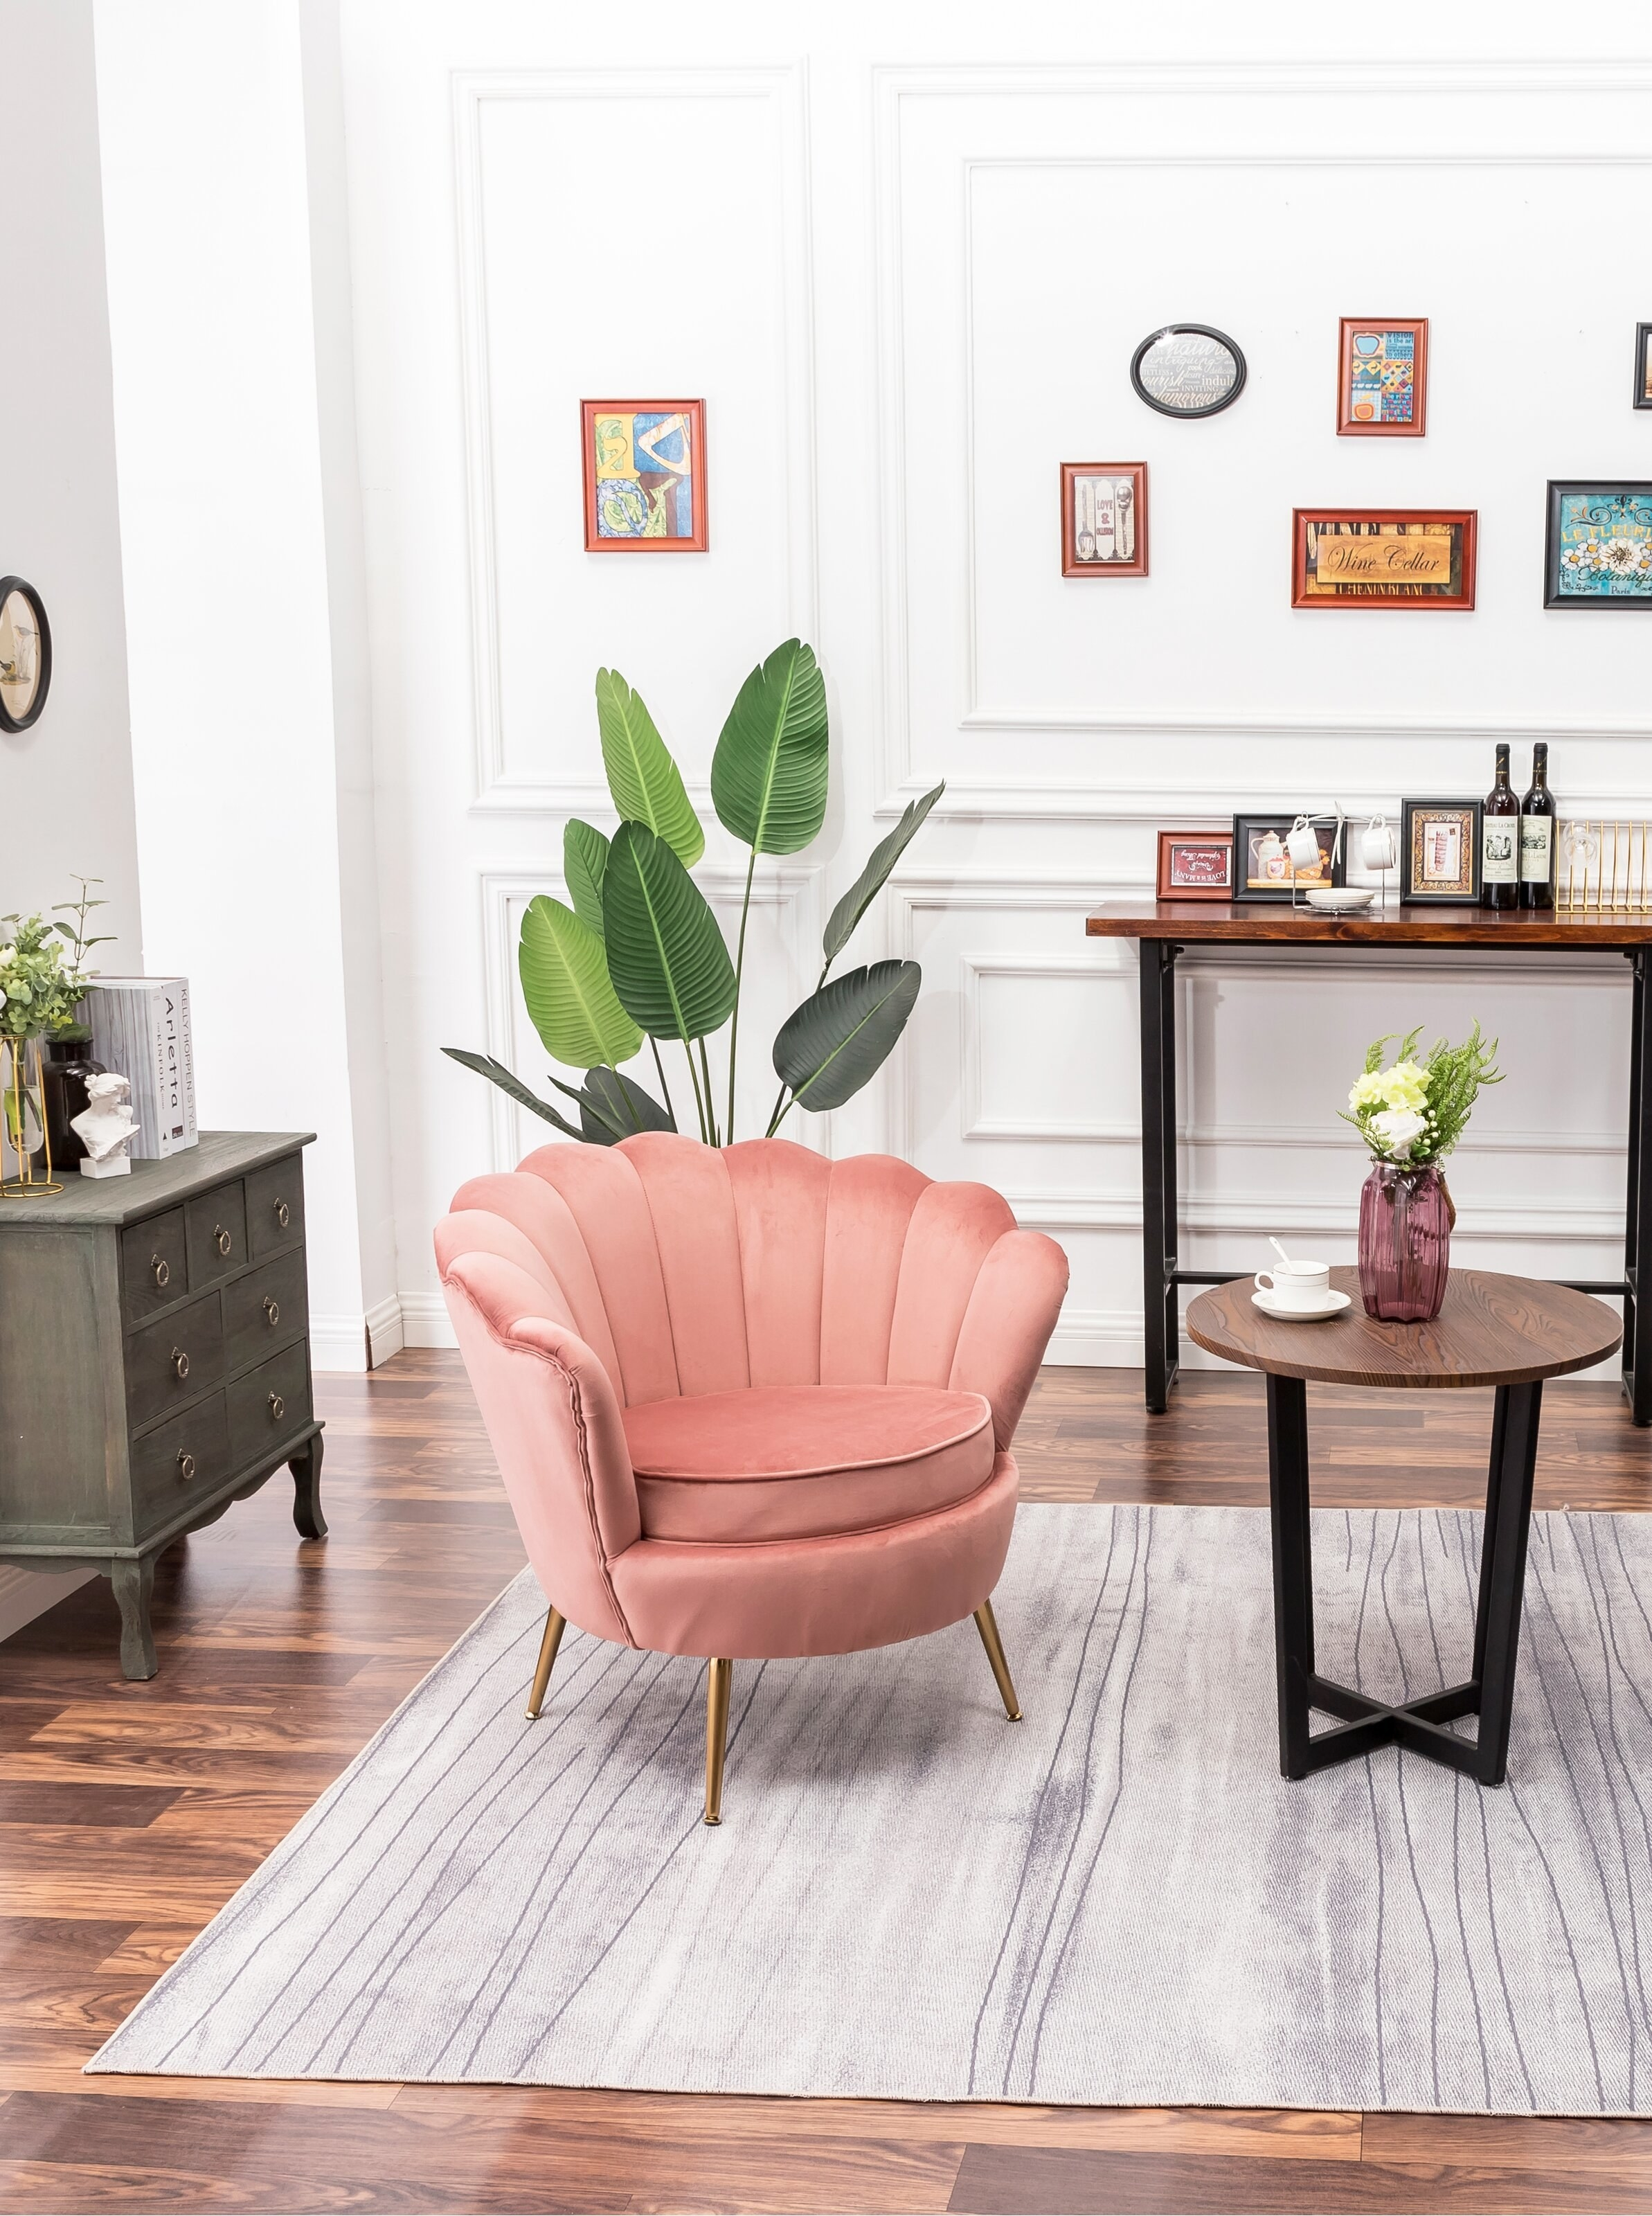 The chair in pink in a living room setup